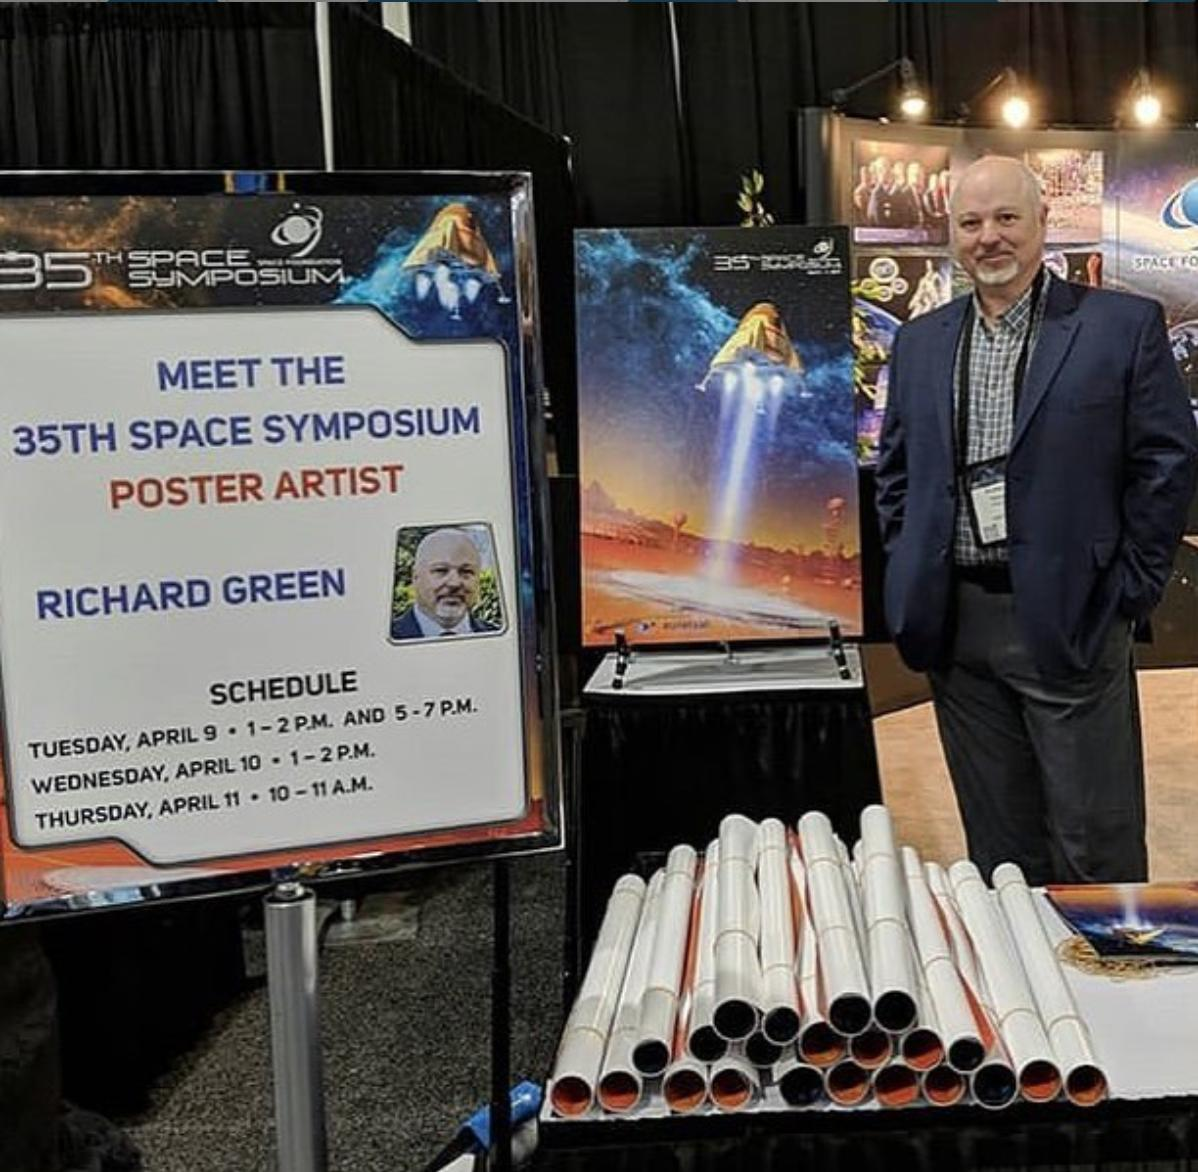 Meet the #SpaceSymposium poster artist now at the Space Foundation booth in the pavilion! #35Space